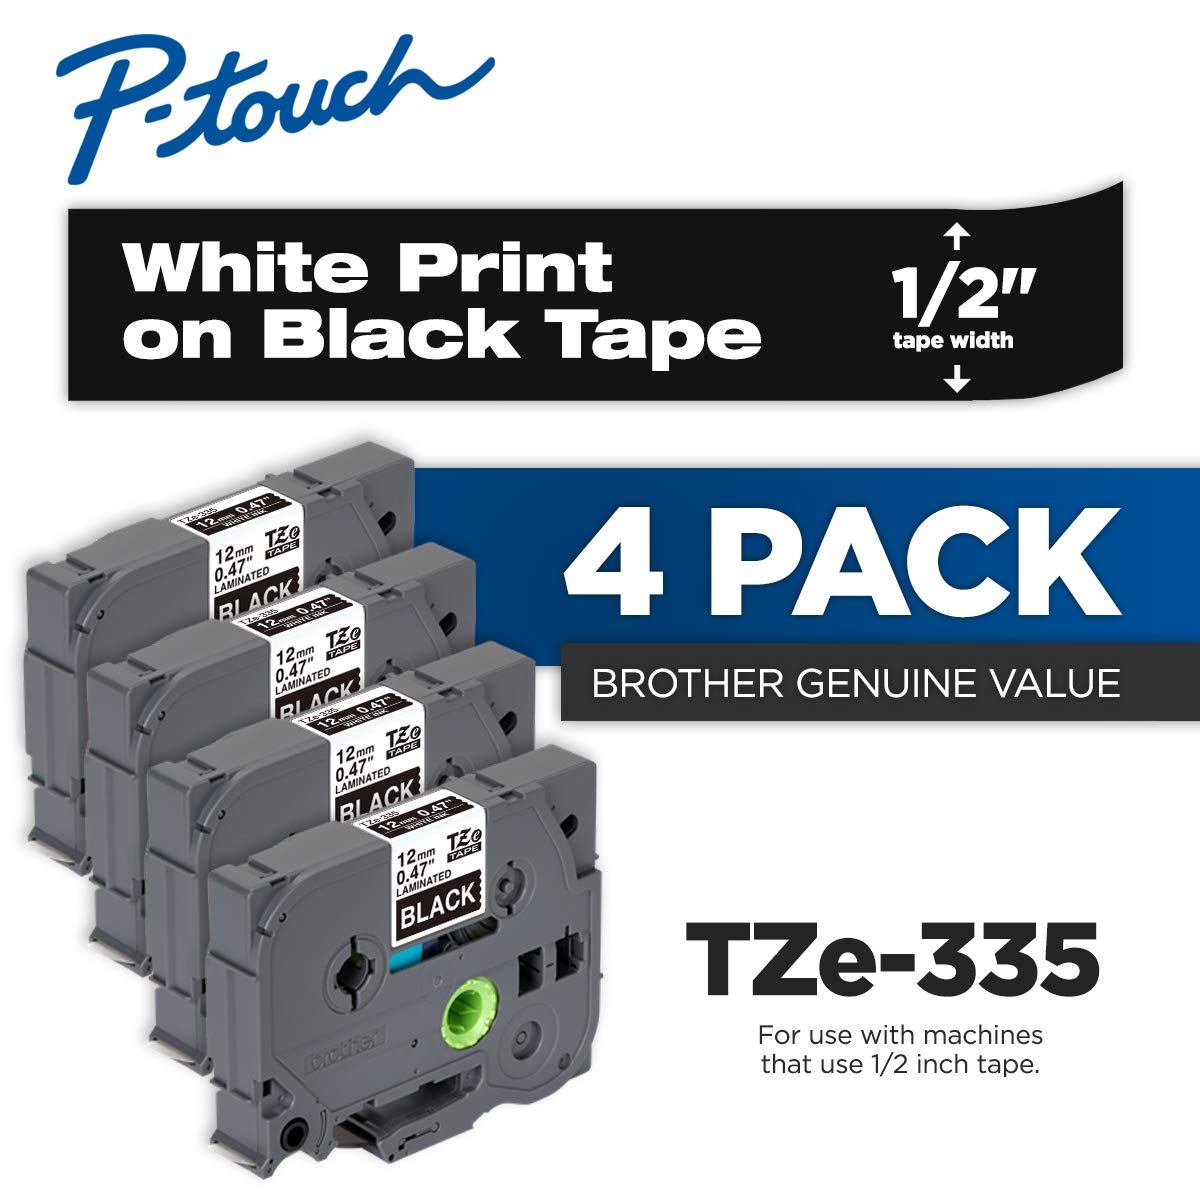 Brother Genuine P-Touch 4-Pack TZe-335 Laminated Tape, White Print on Black Standard Adhesive Laminated Tape for P-Touch Label Makers, Each Roll is 0.47''/12mm (~ 1/2'') Wide, 26.2 ft. (8M) Long